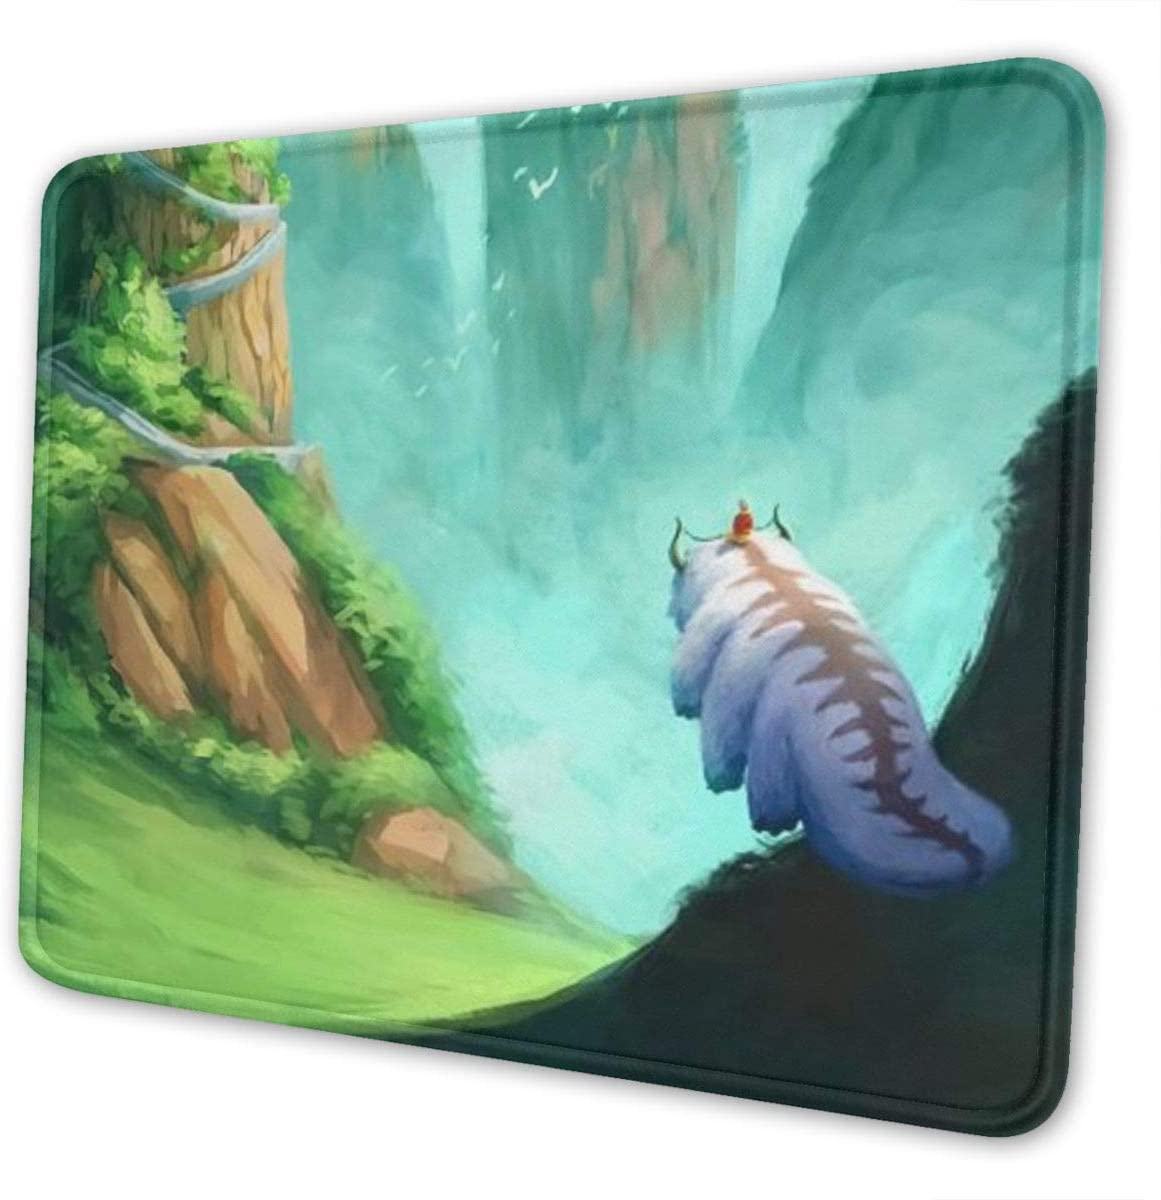 Avatar The Last Airbender Mouse Pad Ergonomic Mousepad Non-Slip Rubber Base Mouse Pads for Computers Laptop Office Desk Accessories Mouse Pad 10 X 12 Inch